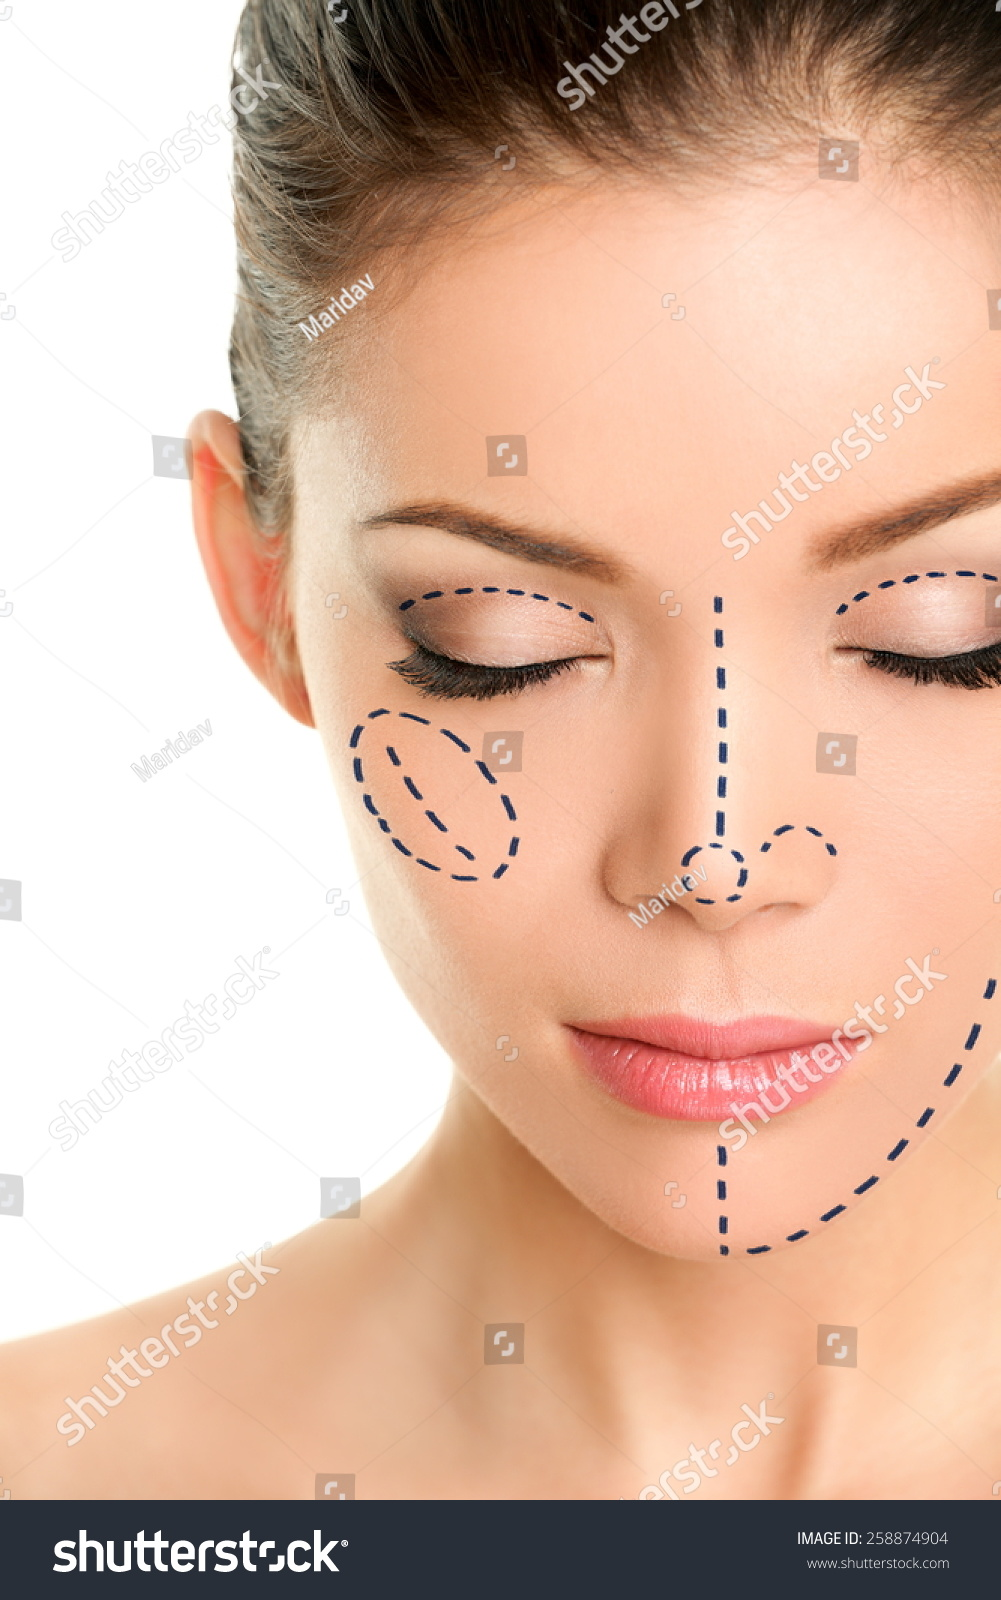 Cosmetic Surgery Of The Asian Face 14